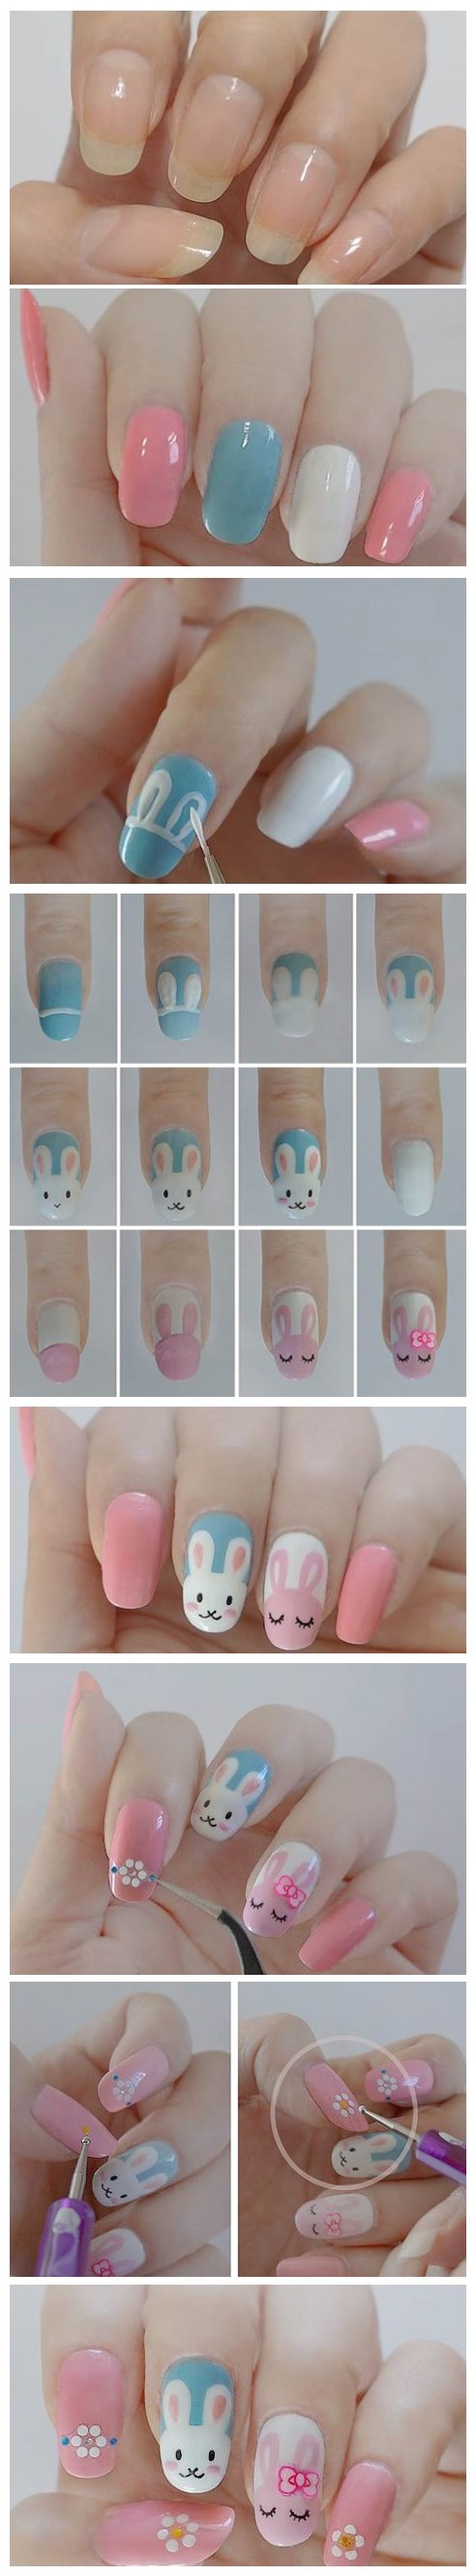 DIY-Easter-bunny-nail-polish-manicure-design